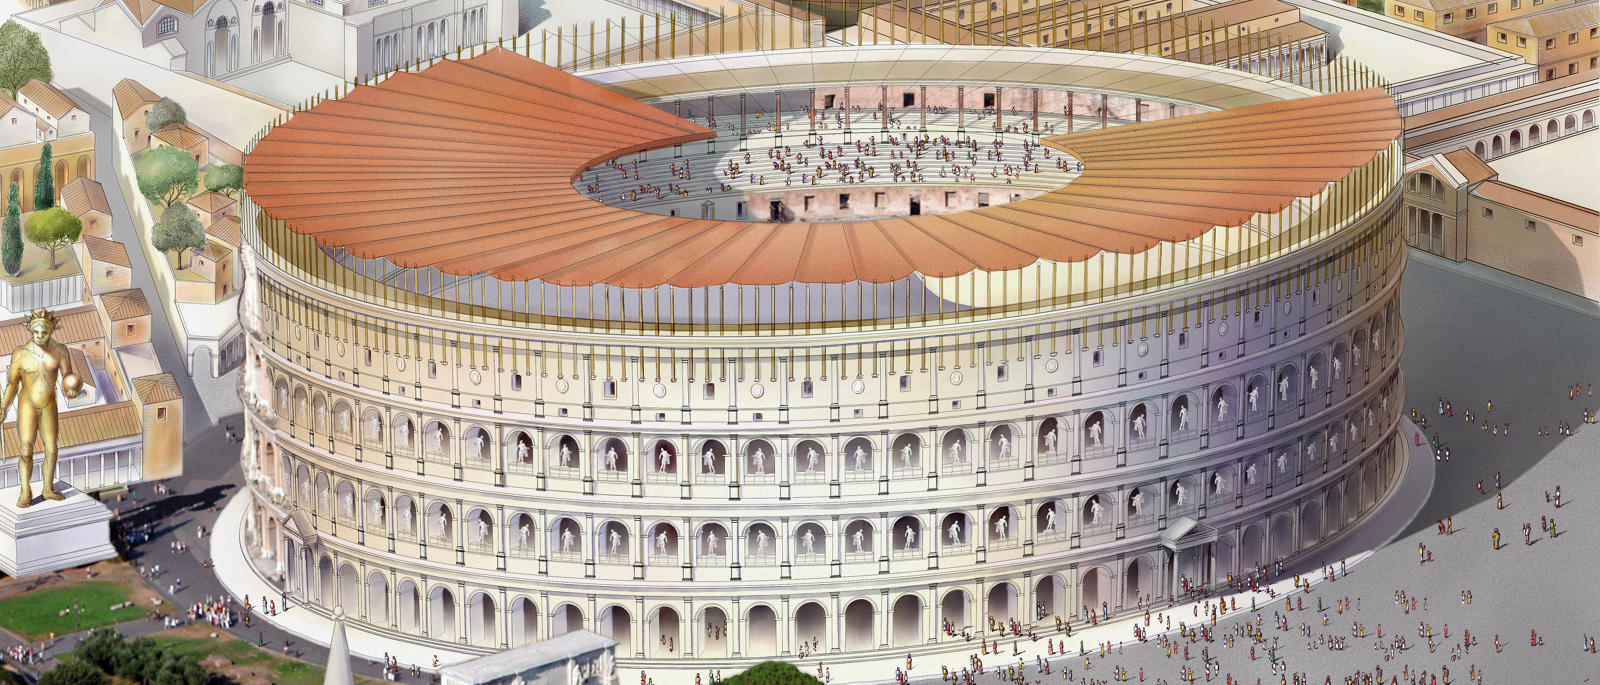 The Beauty Of The Roman Colosseum Italy Steemkr